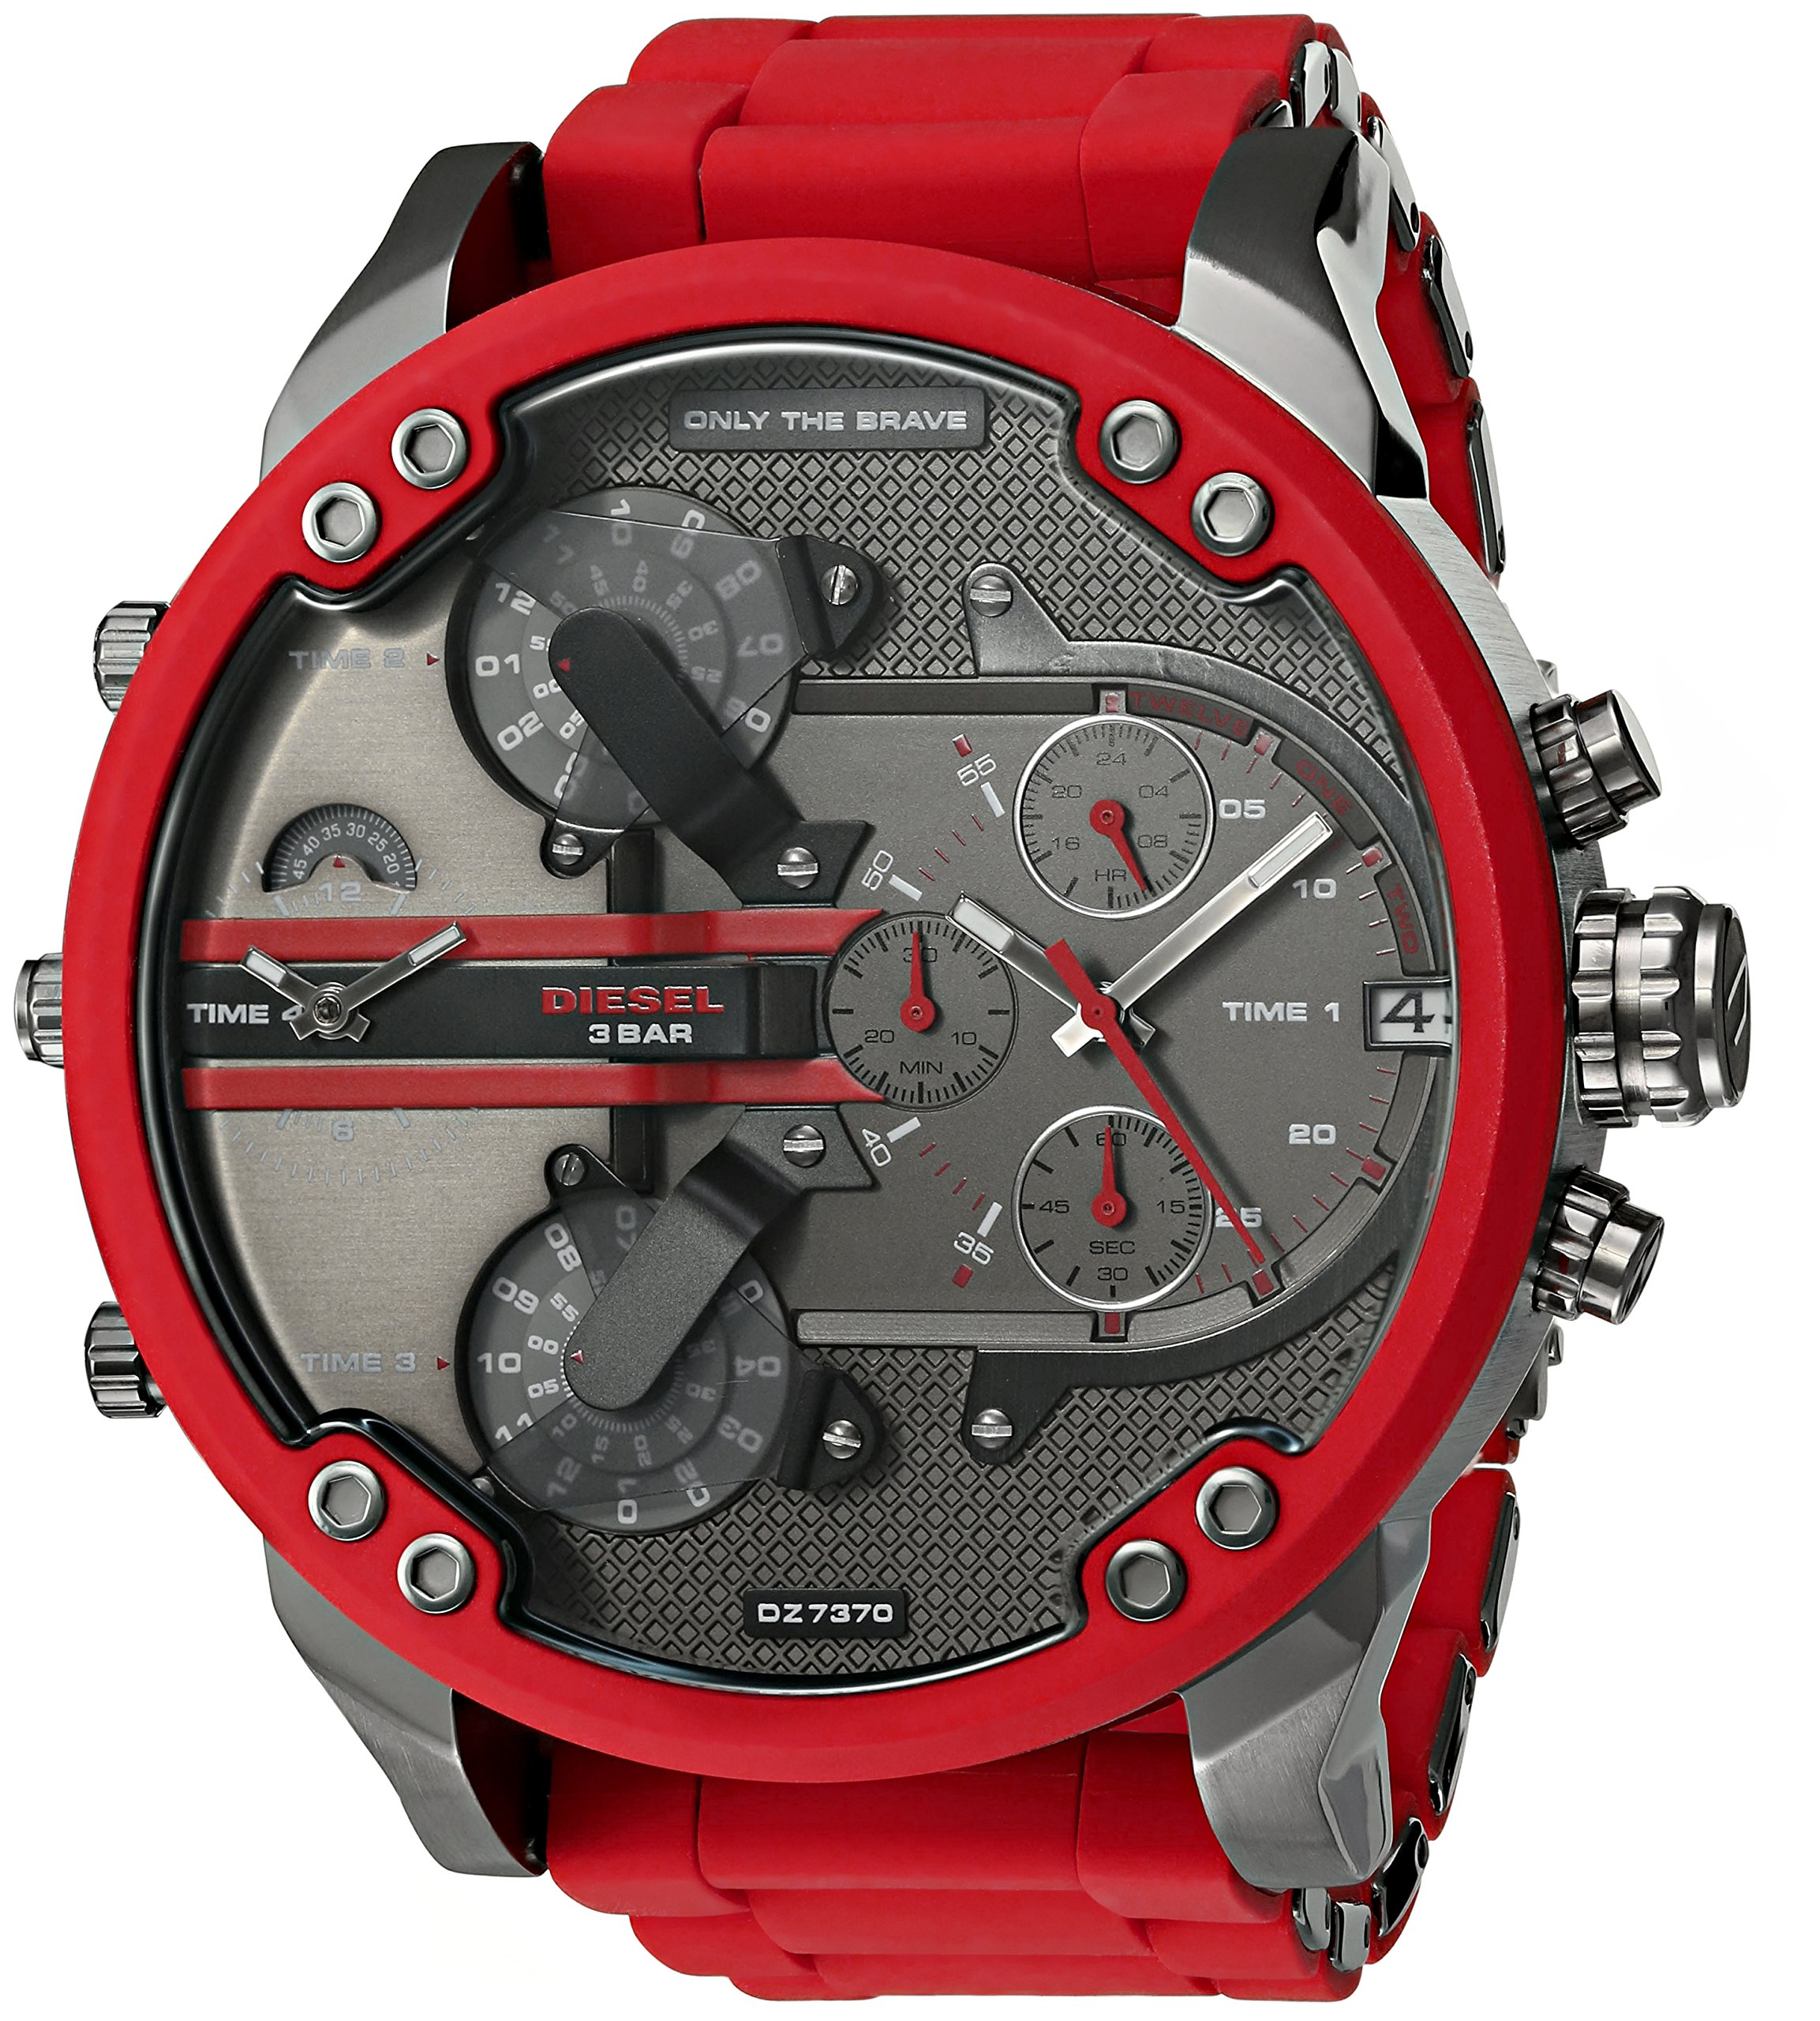 763d06e51b4 Buy Diesel Mens Mr. Daddy Red Watch in Cheap Price on Alibaba.com